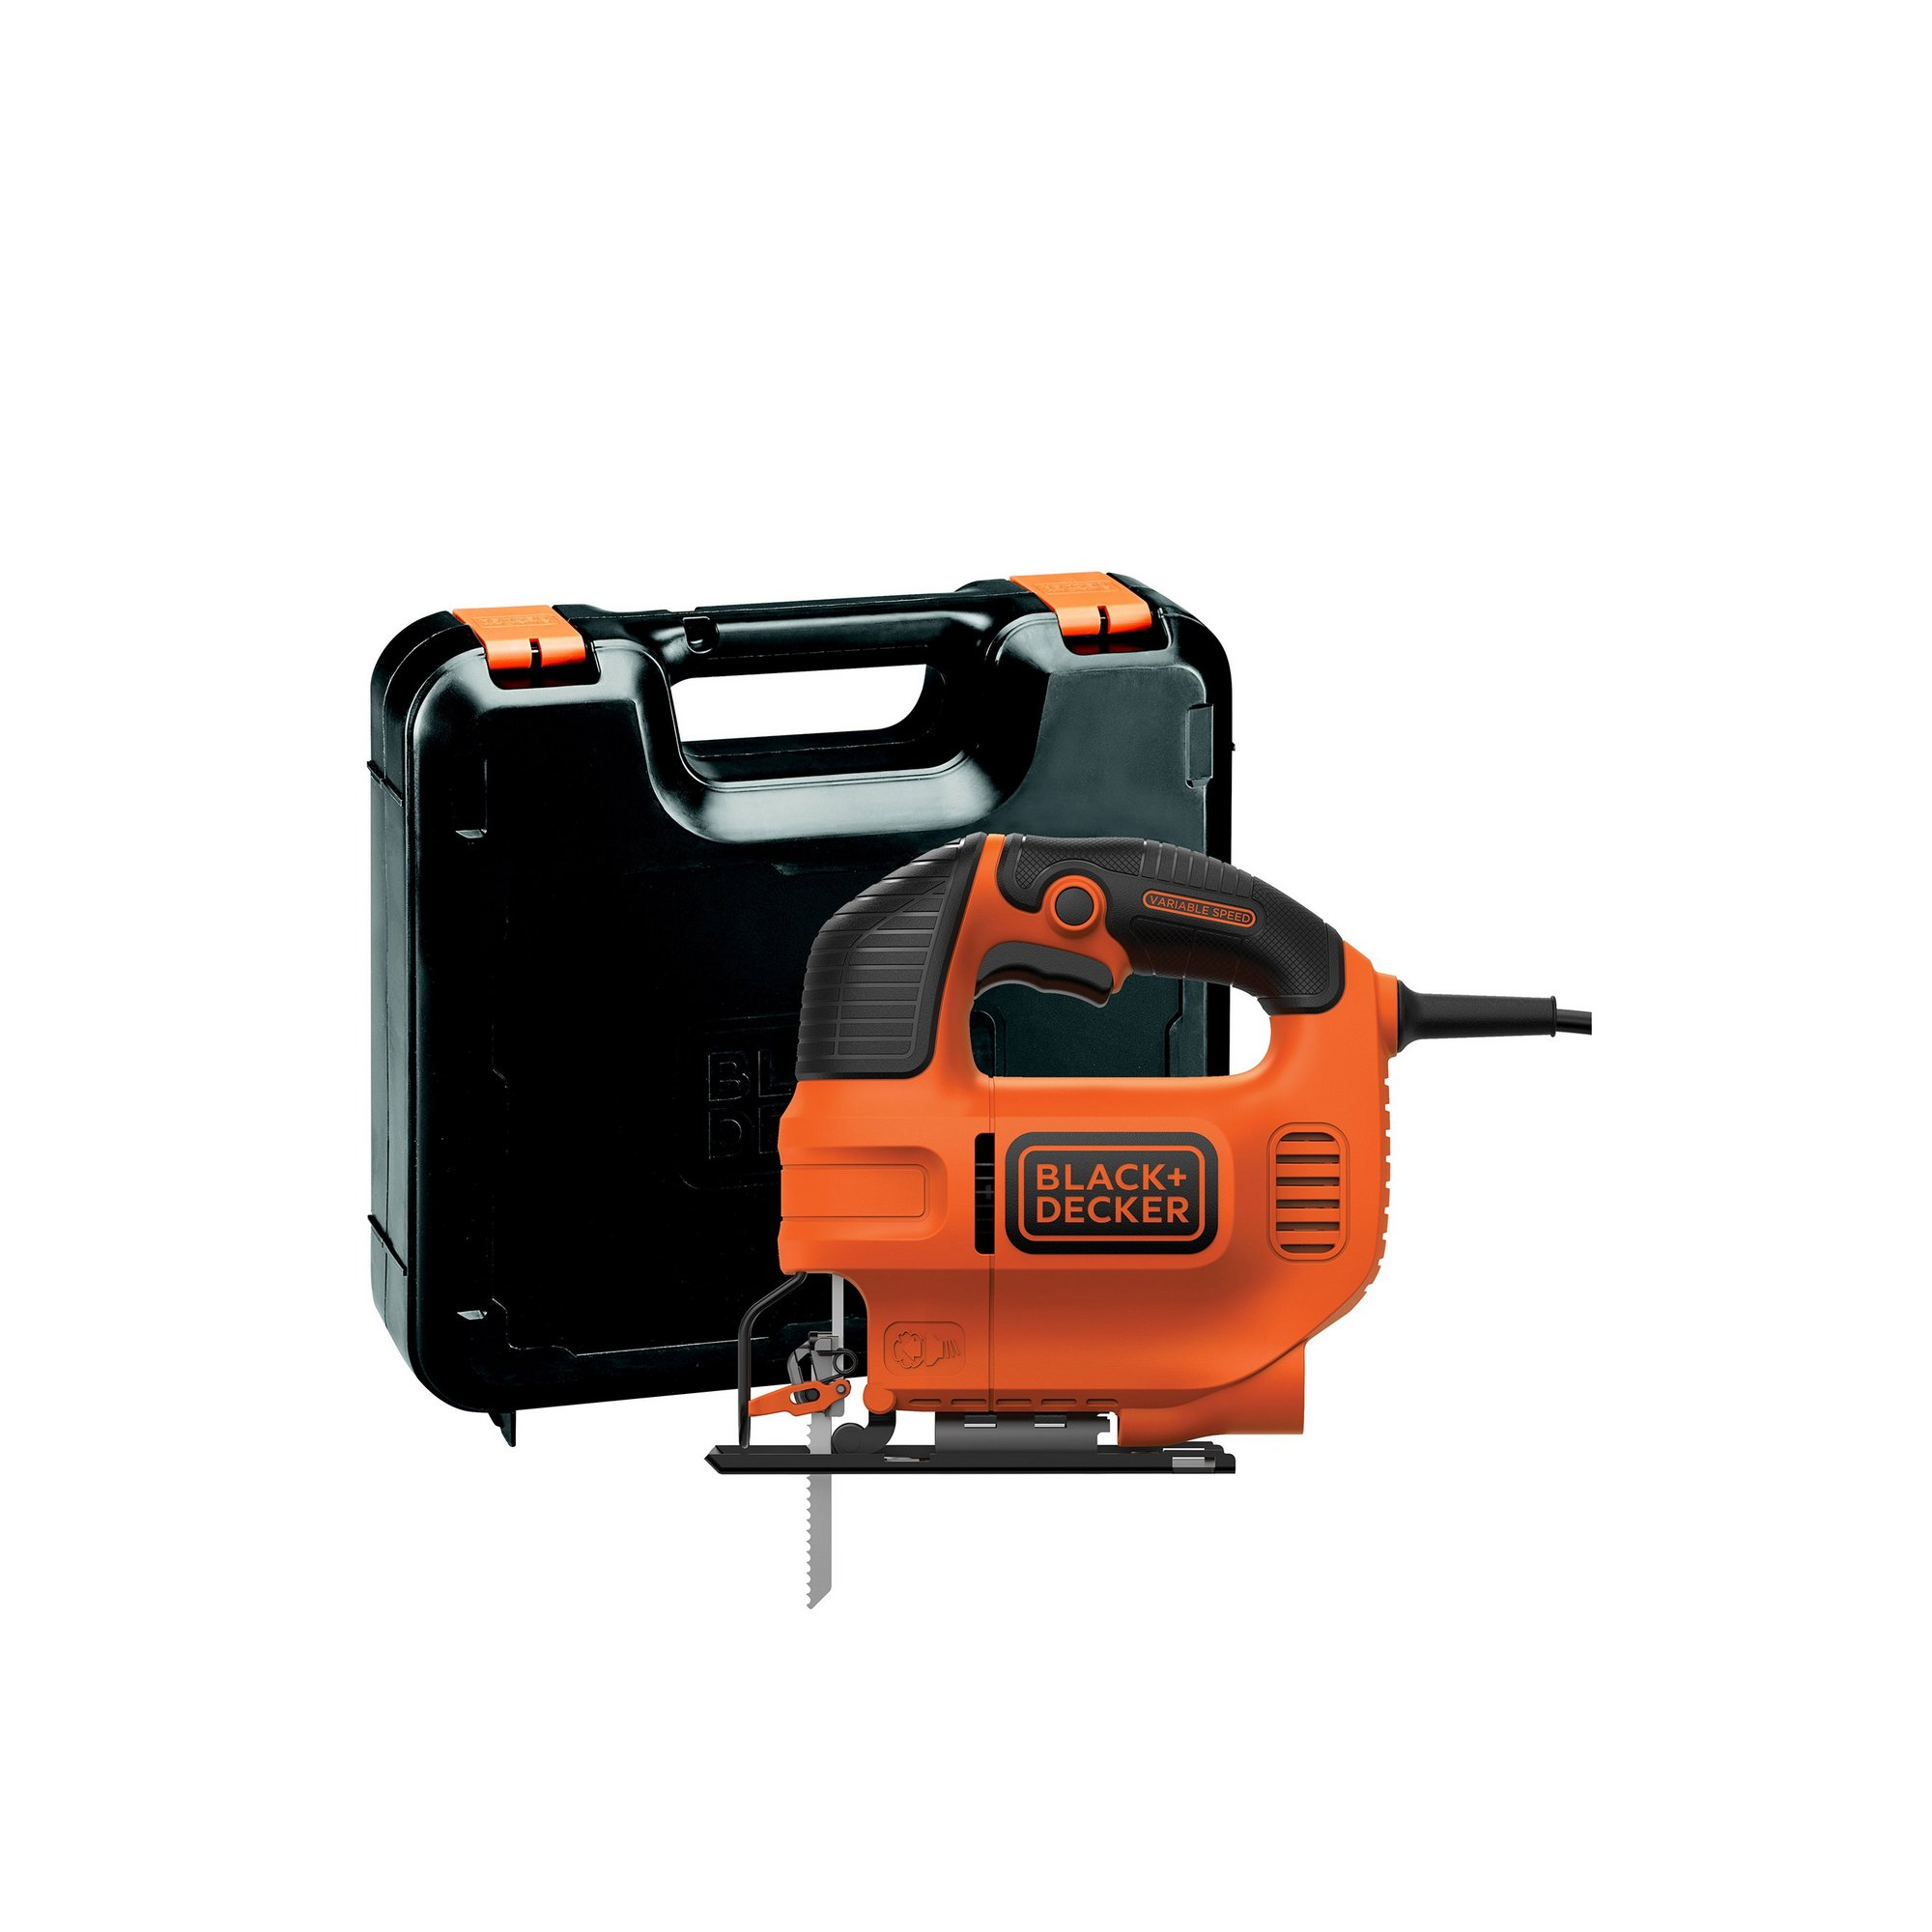 Image of Black and Decker Jigsaw and Box